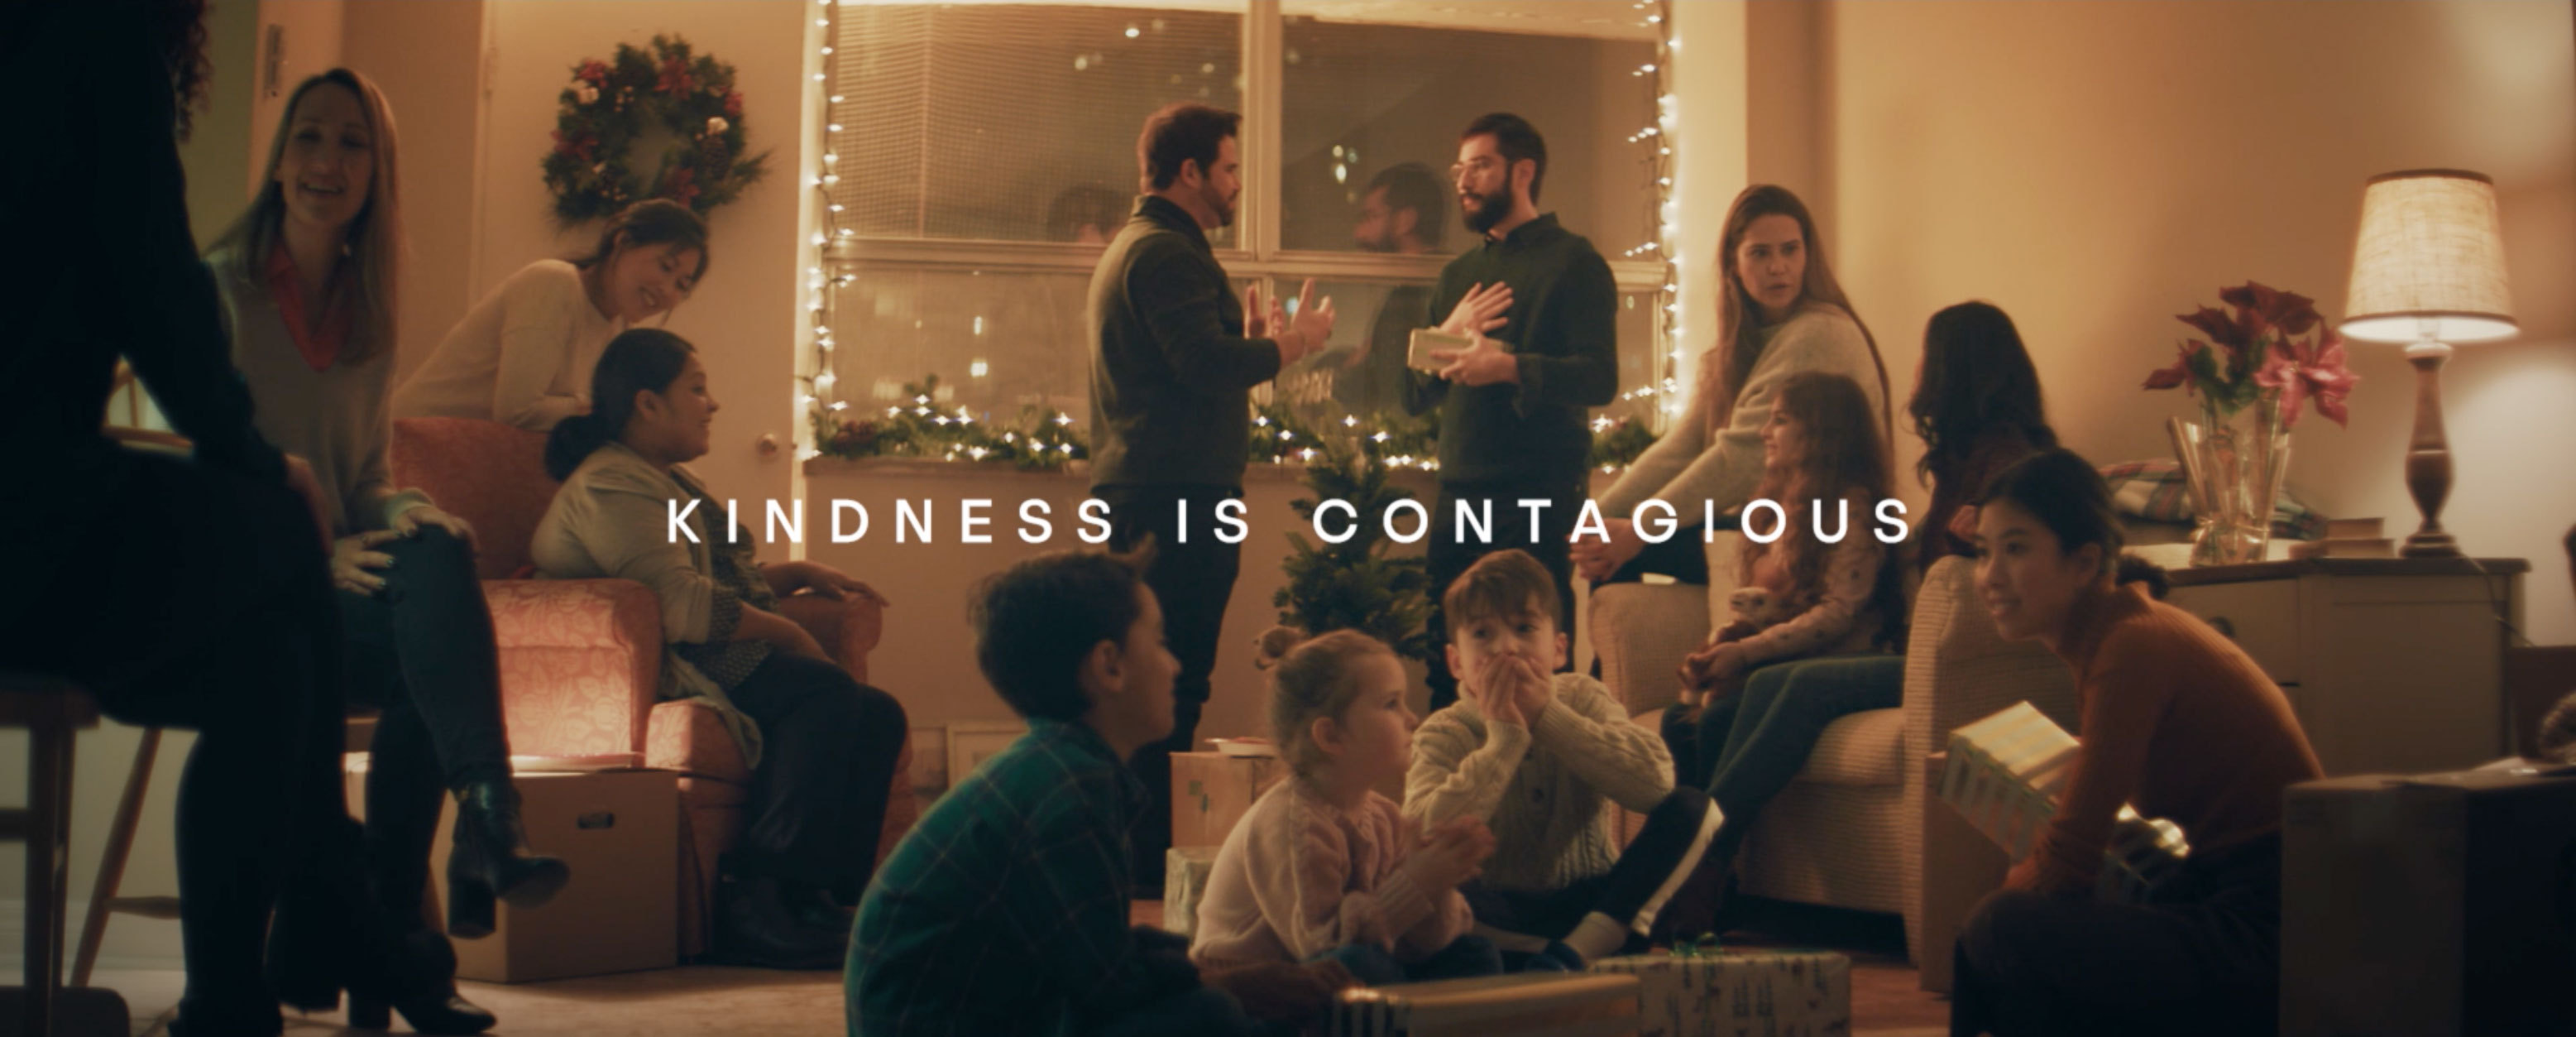 Klick Health Aims To Make Kindness Contagious With Holiday Video Supporting Fred Rogers Center Business Wire